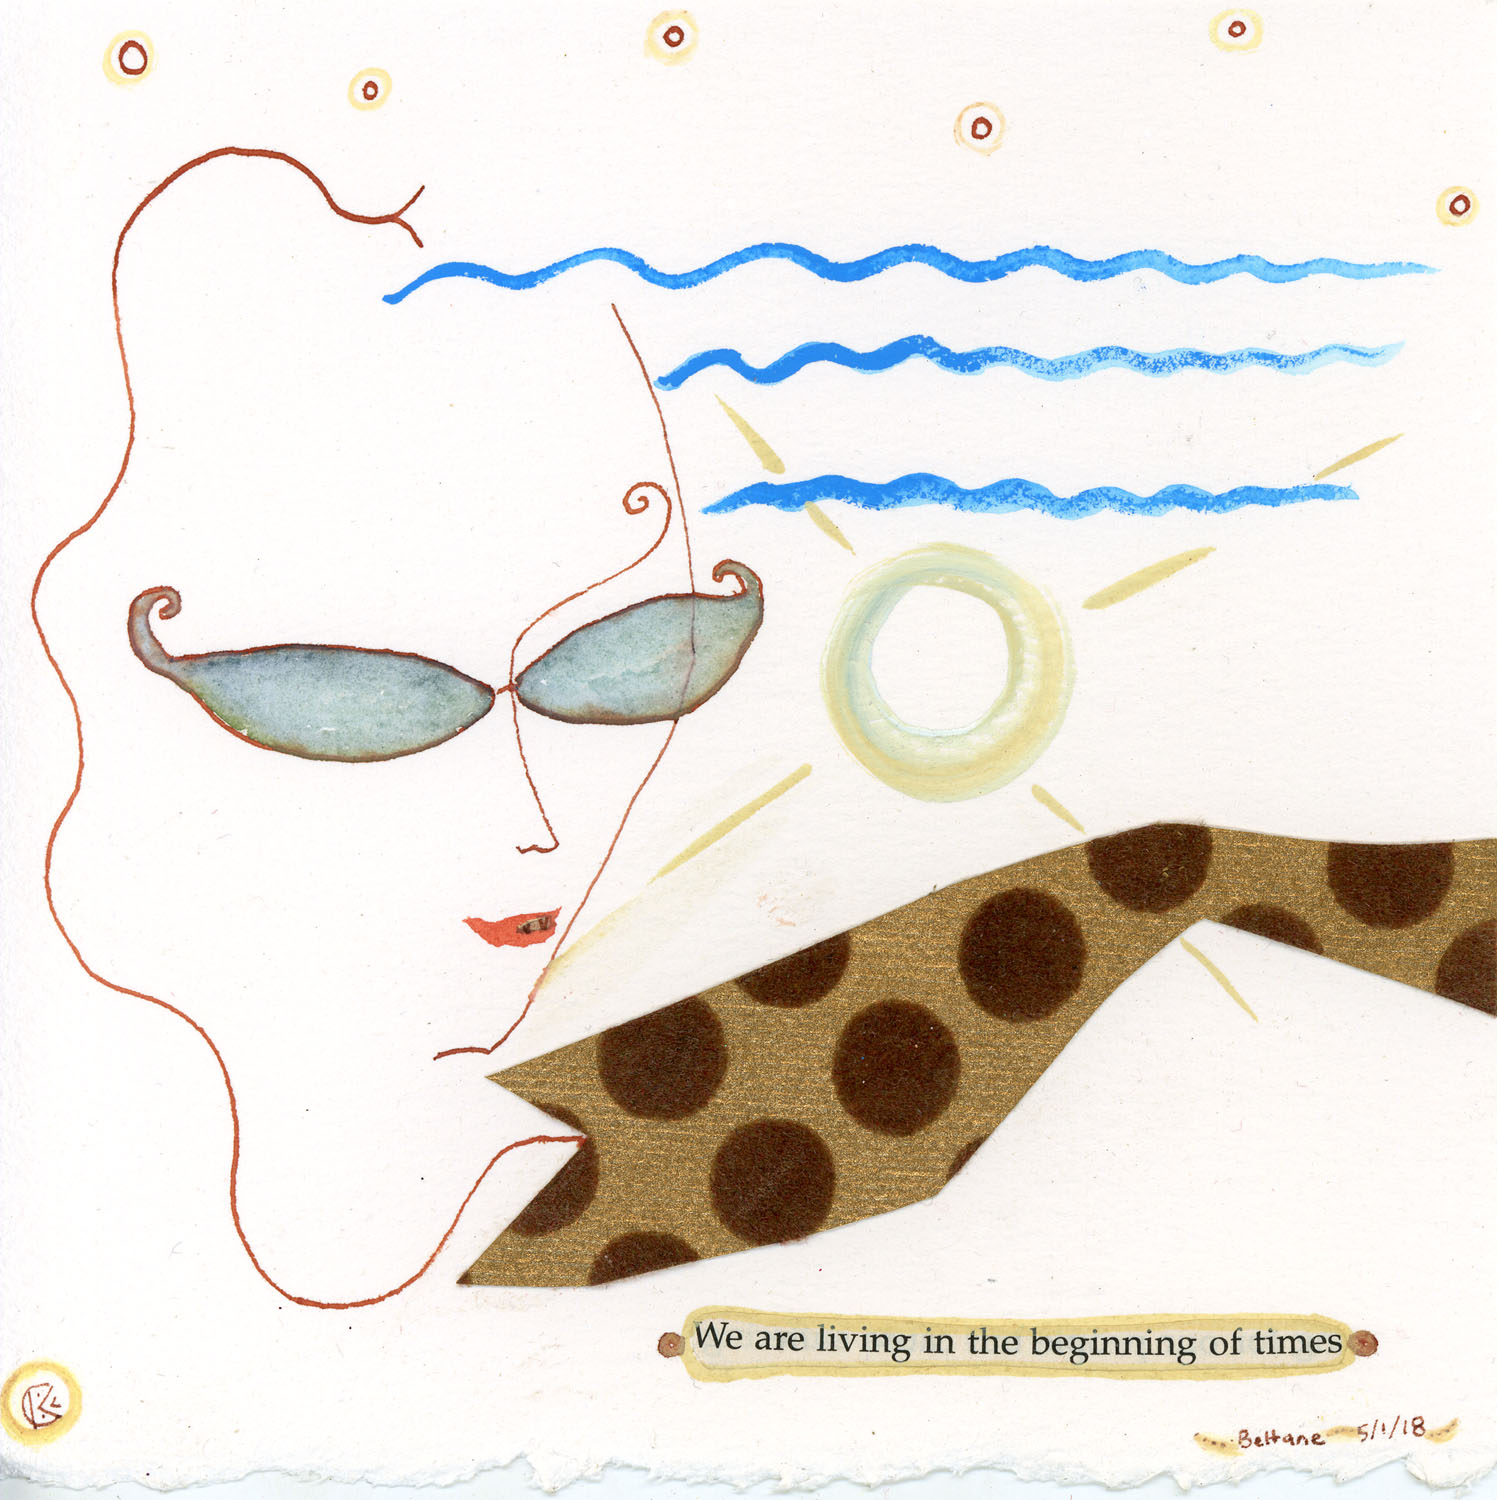 We are living in the beginning of times by Kathy Crabbe. The original is available  here .